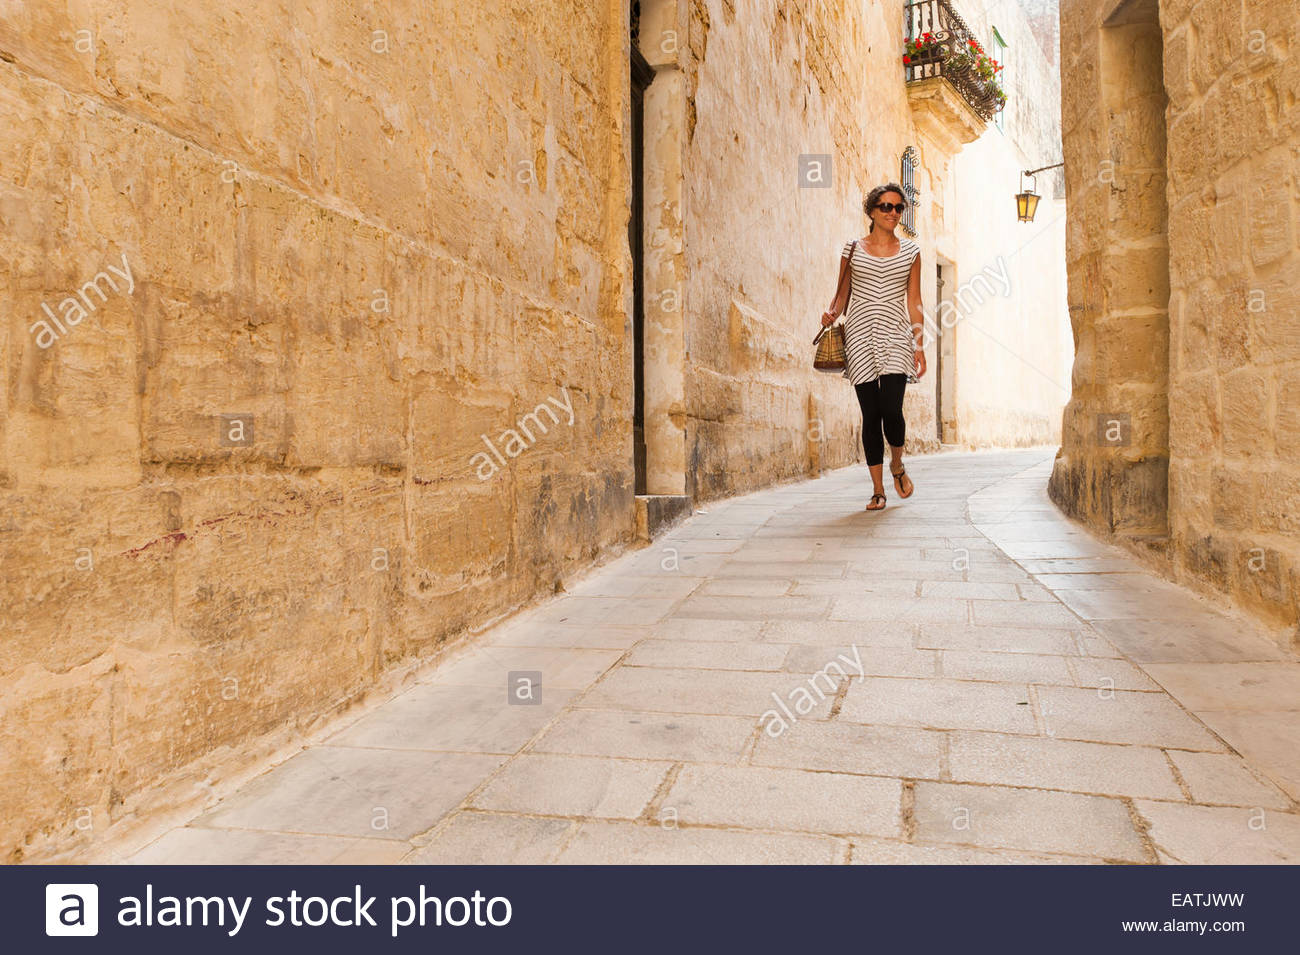 A tourist explores the backstreets of the old town of Mdina in Malta Stock Photo